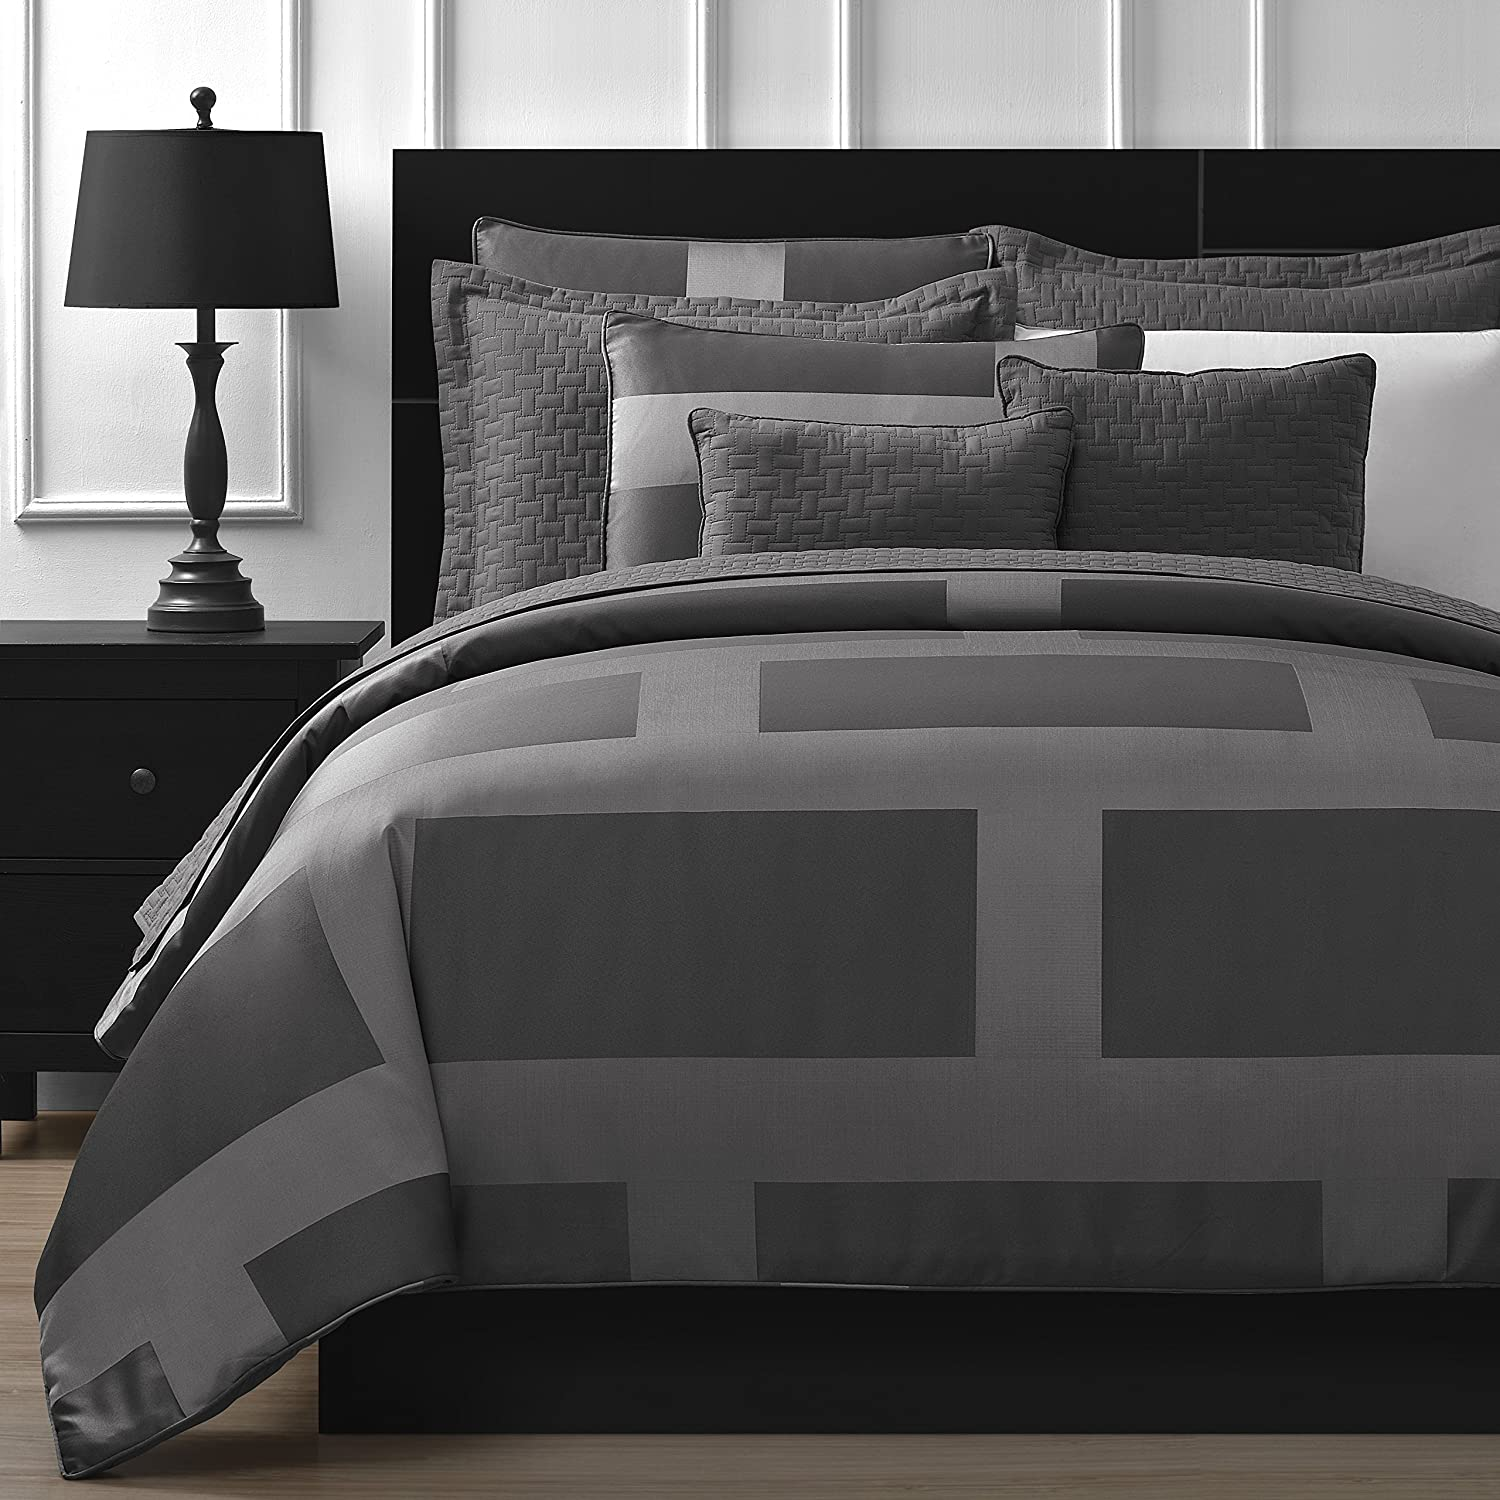 Bed sheet set black and white - Amazon Com Comfy Bedding Frame Jacquard Microfiber Queen 5 Piece Comforter Set Gray Home Kitchen